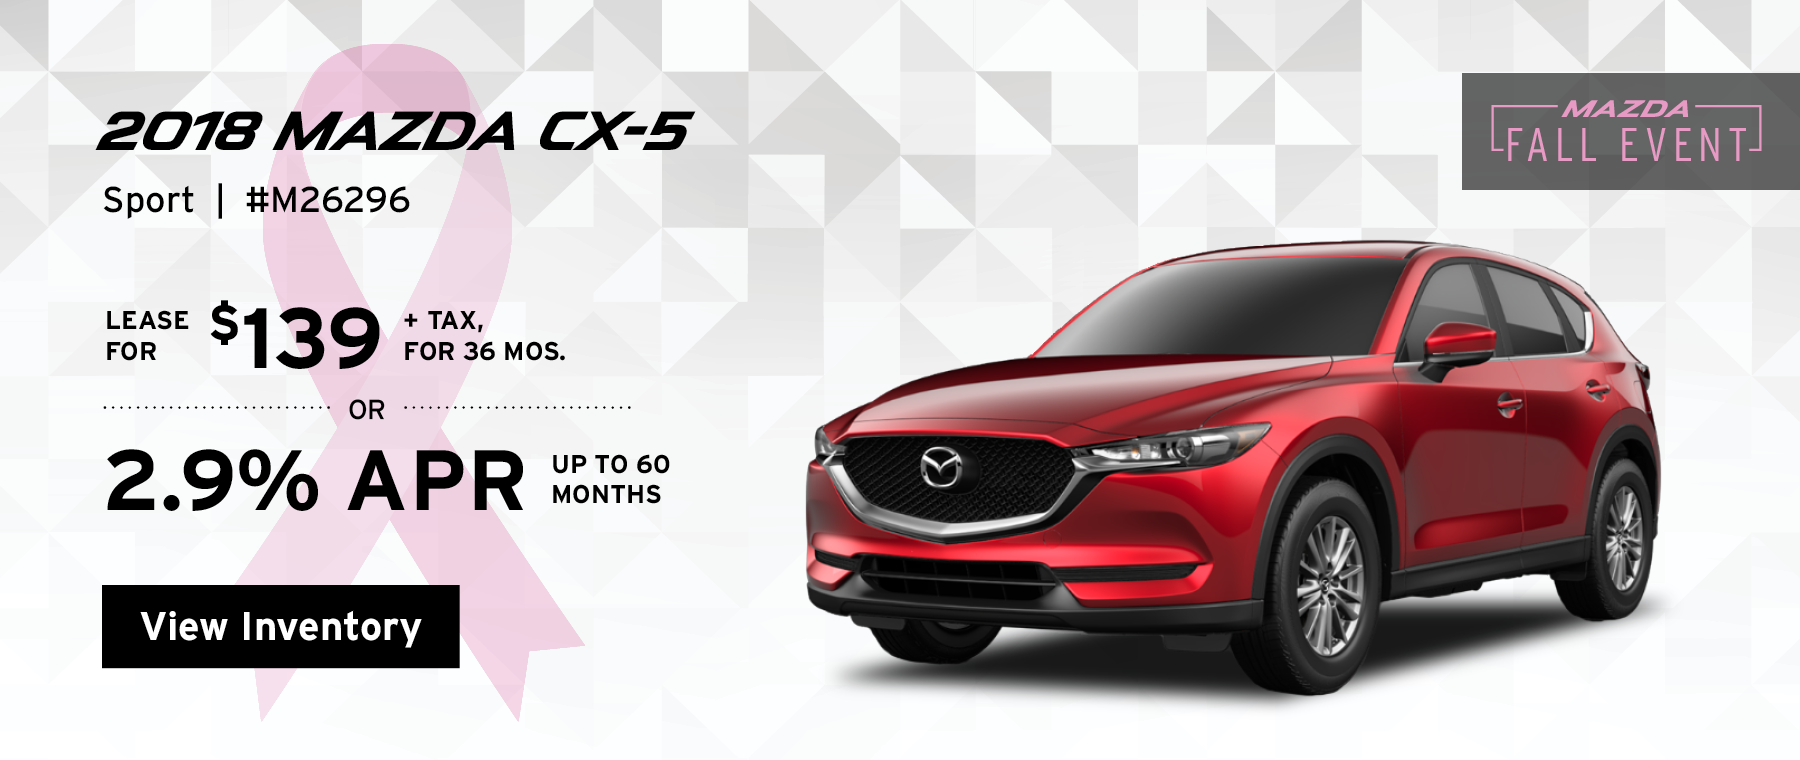 Lease the 2018 Mazda CX-5 Sport for $139, plus tax for 36 months, or 2.9% APR up to 60 months.